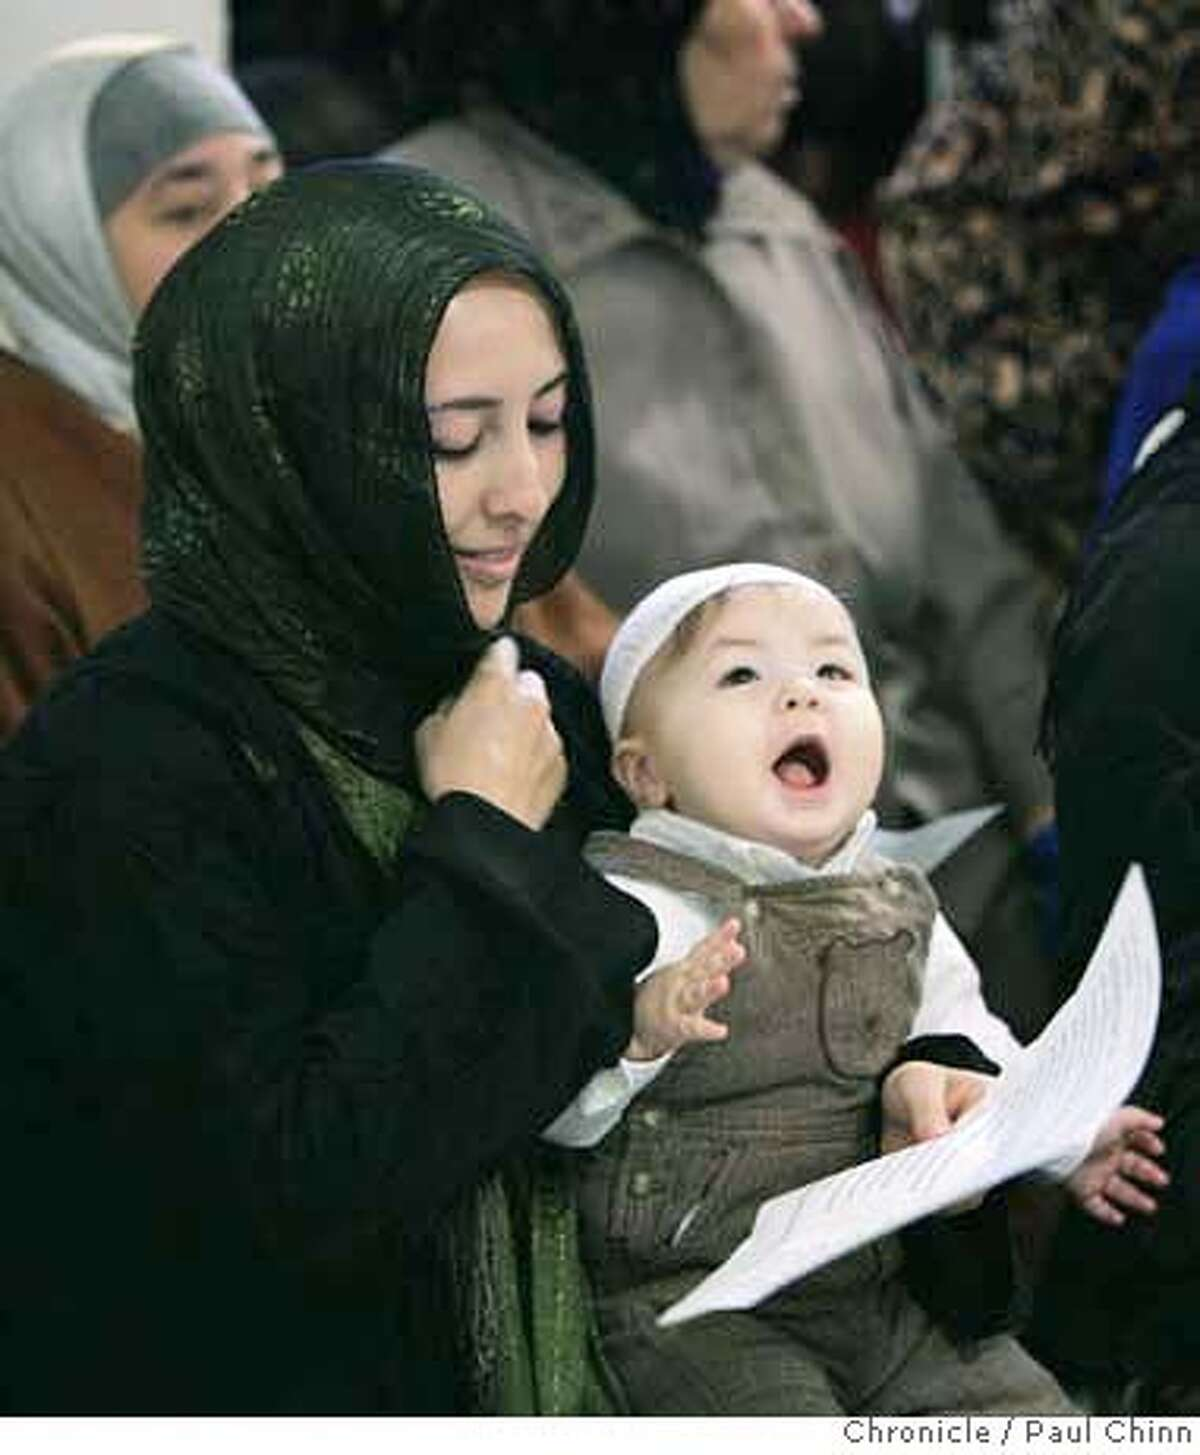 Sarah Alalusi and her son Deen joined other Muslims to celebrate the Eid Al Adha (cq) holiday at Masjid Al Iman in Oakland, Calif. on Saturday, Dec. 30, 2006. According to a statement released by the mosque, the Eid Al Adha, or Festival of Sacrifice, coincides with the annual pilgrimage to Makkah, Saudi Arabia. PAUL CHINN/The Chronicle **Sarah Alalusi, Deen